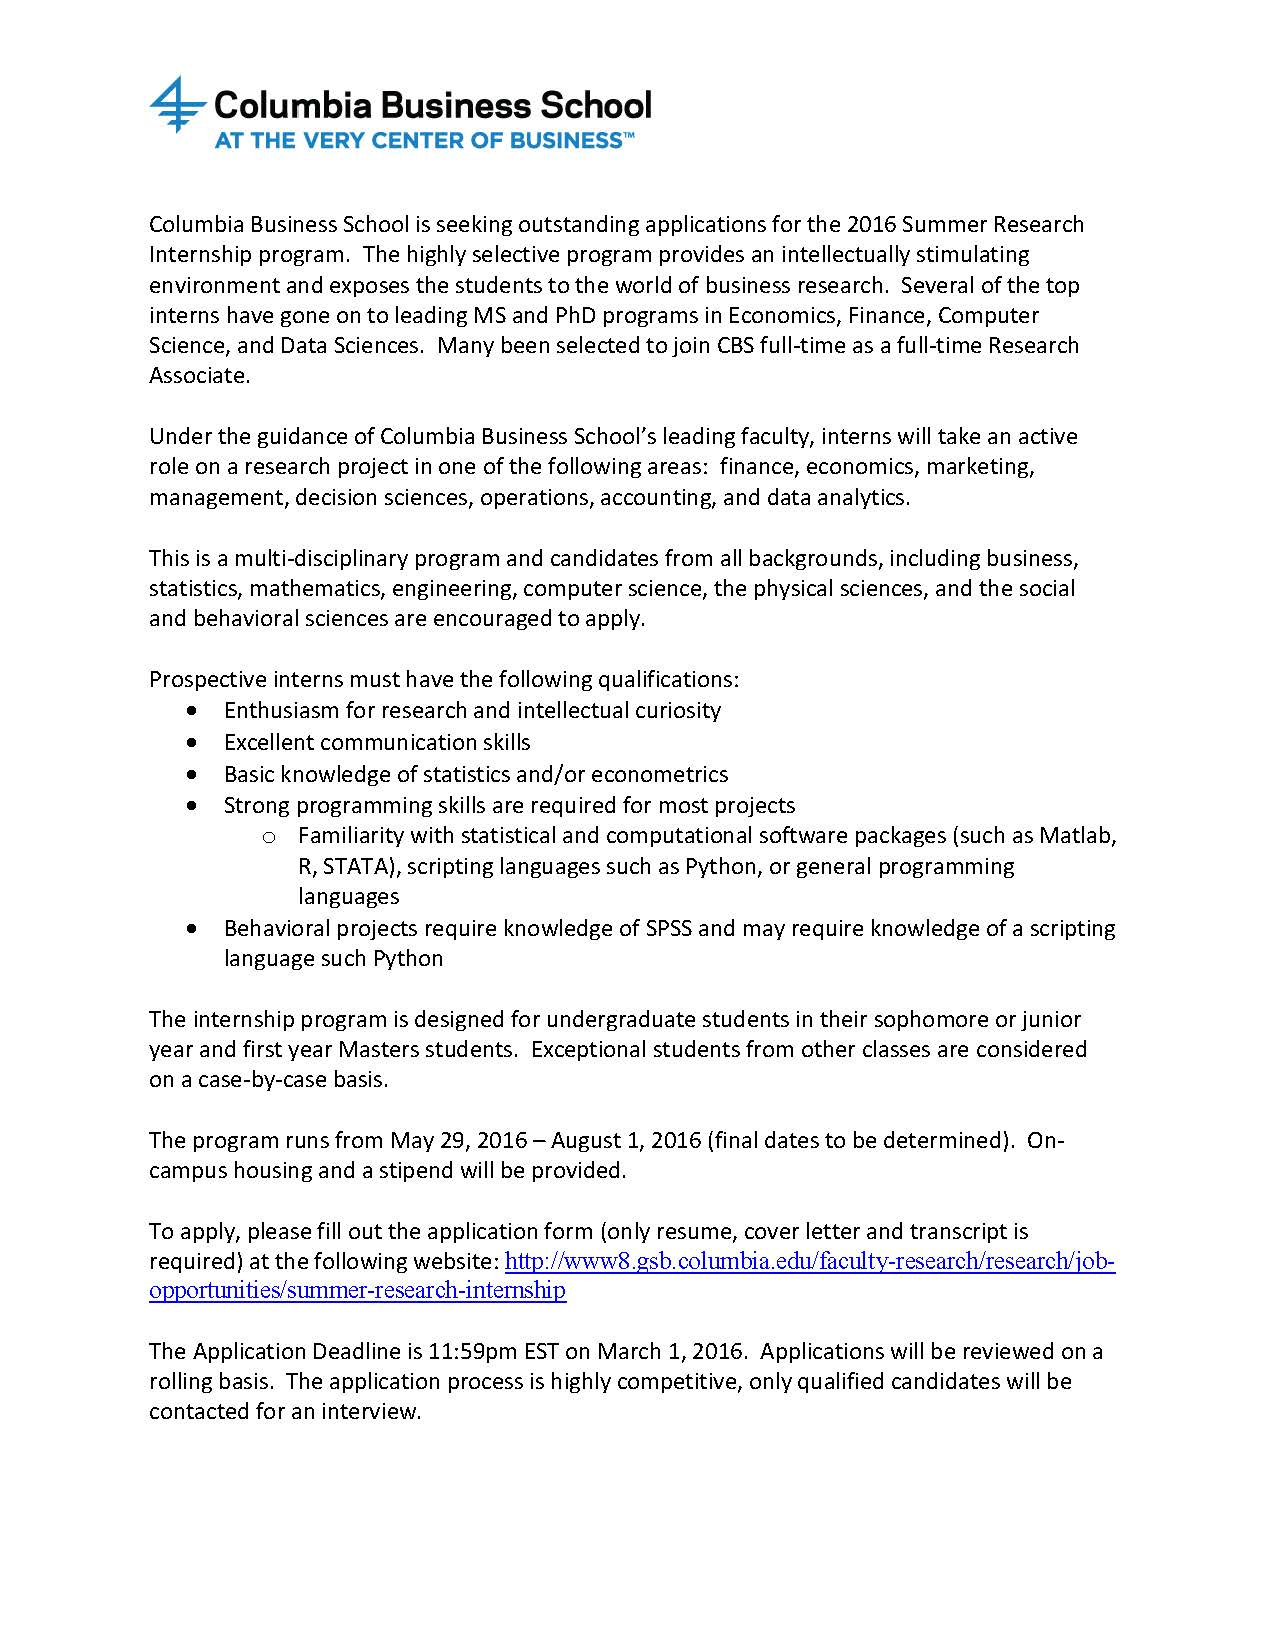 columbia business school application resume compliance expert